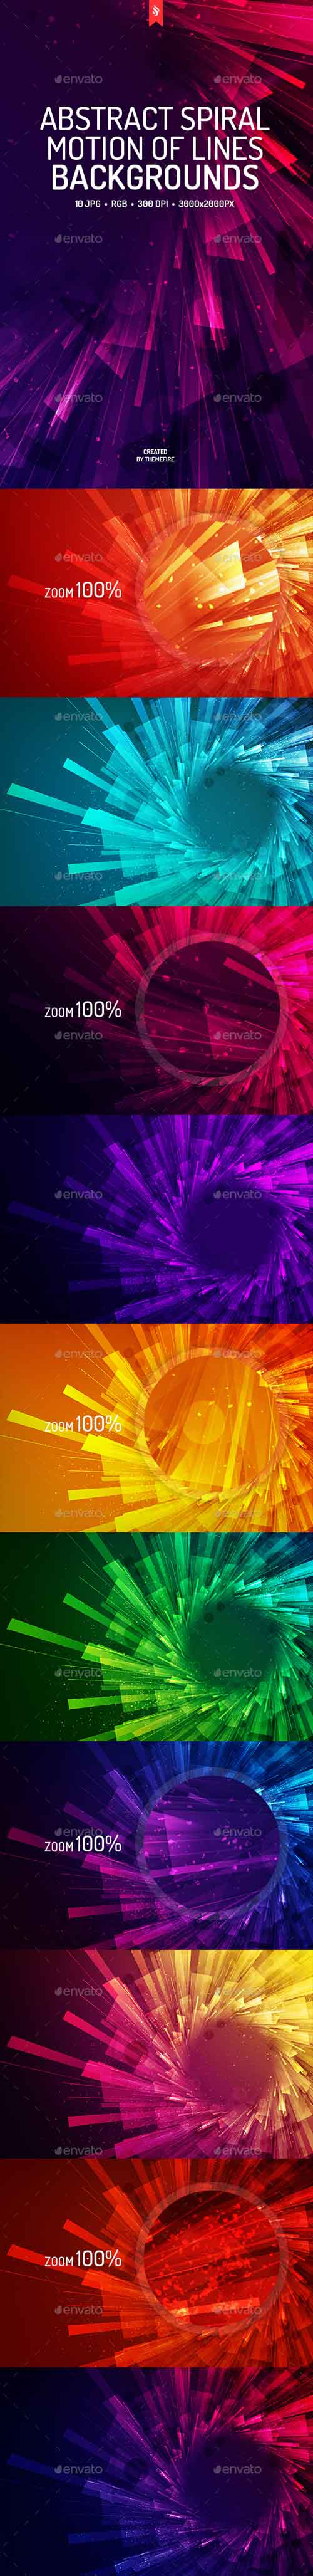 Spiral Motion of Lines Backgrounds 19427905